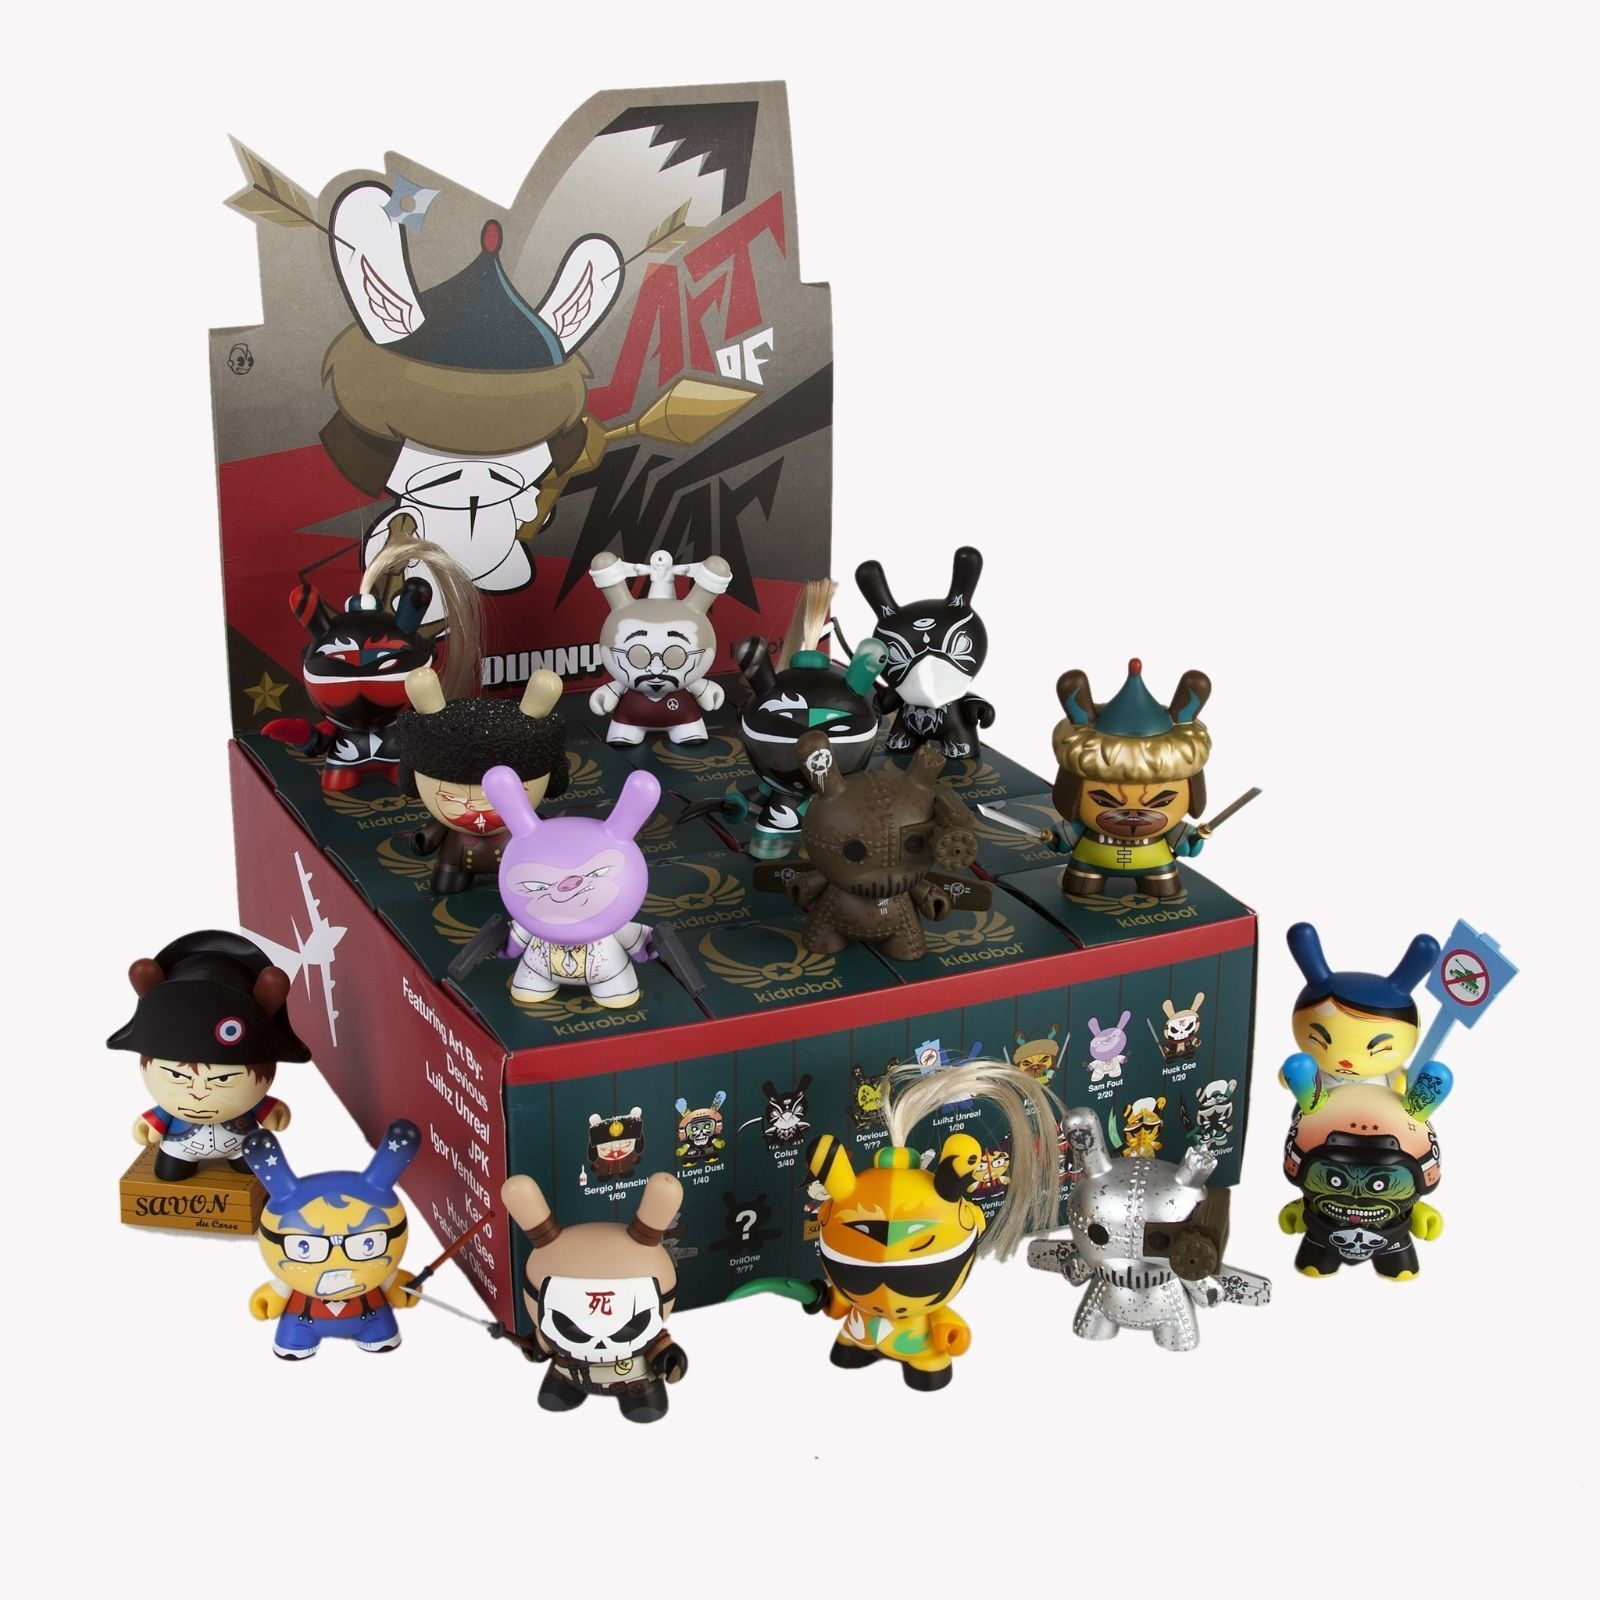 Art of War Master Case    4 Sealed Dunny Series Cases 80 Blind scatolaes - Kidrobot  una marca di lusso